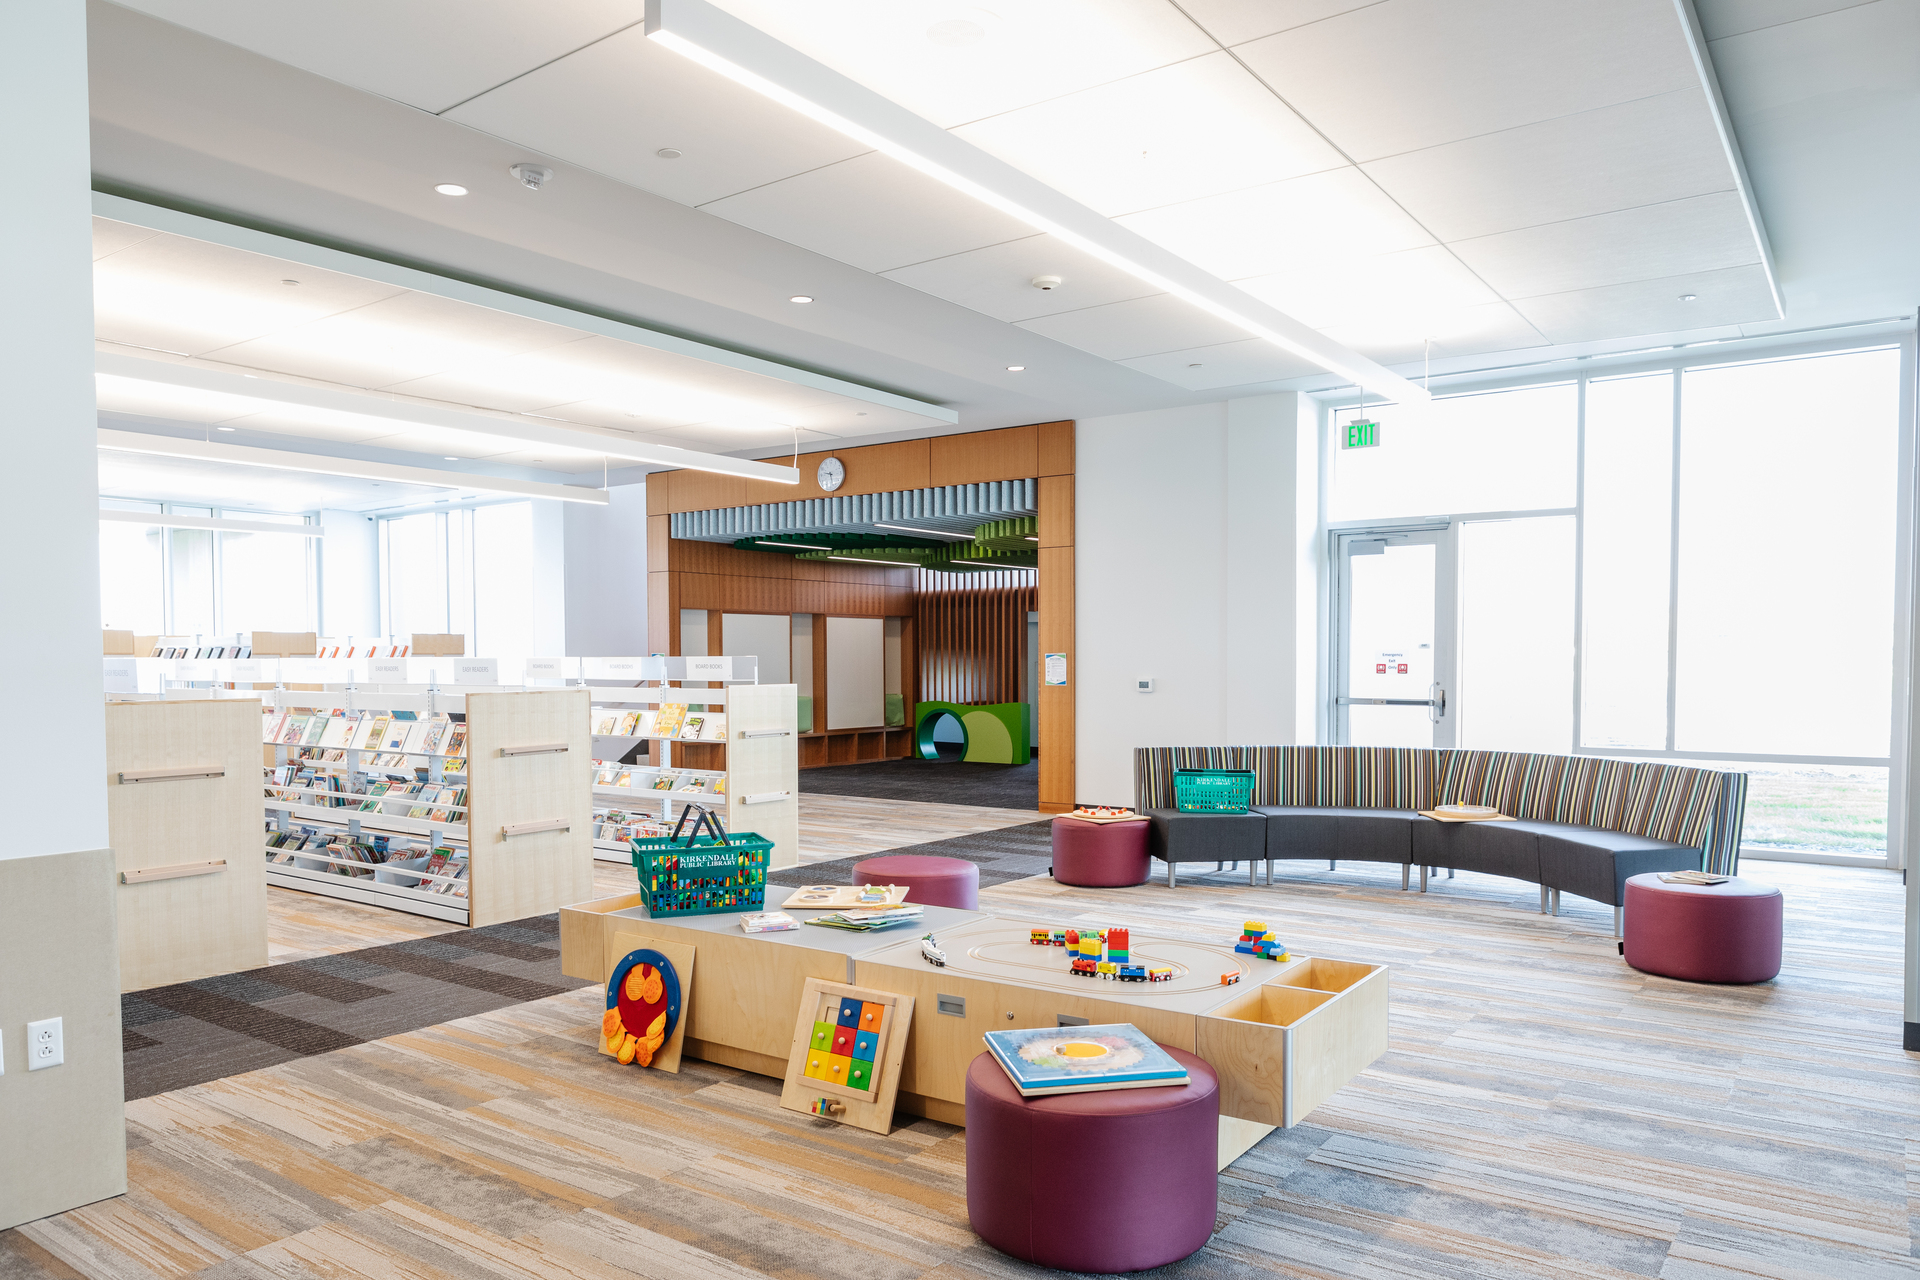 Stahl Construction Ankeny Kirkendall Public Library Interior Natural Light and Seating